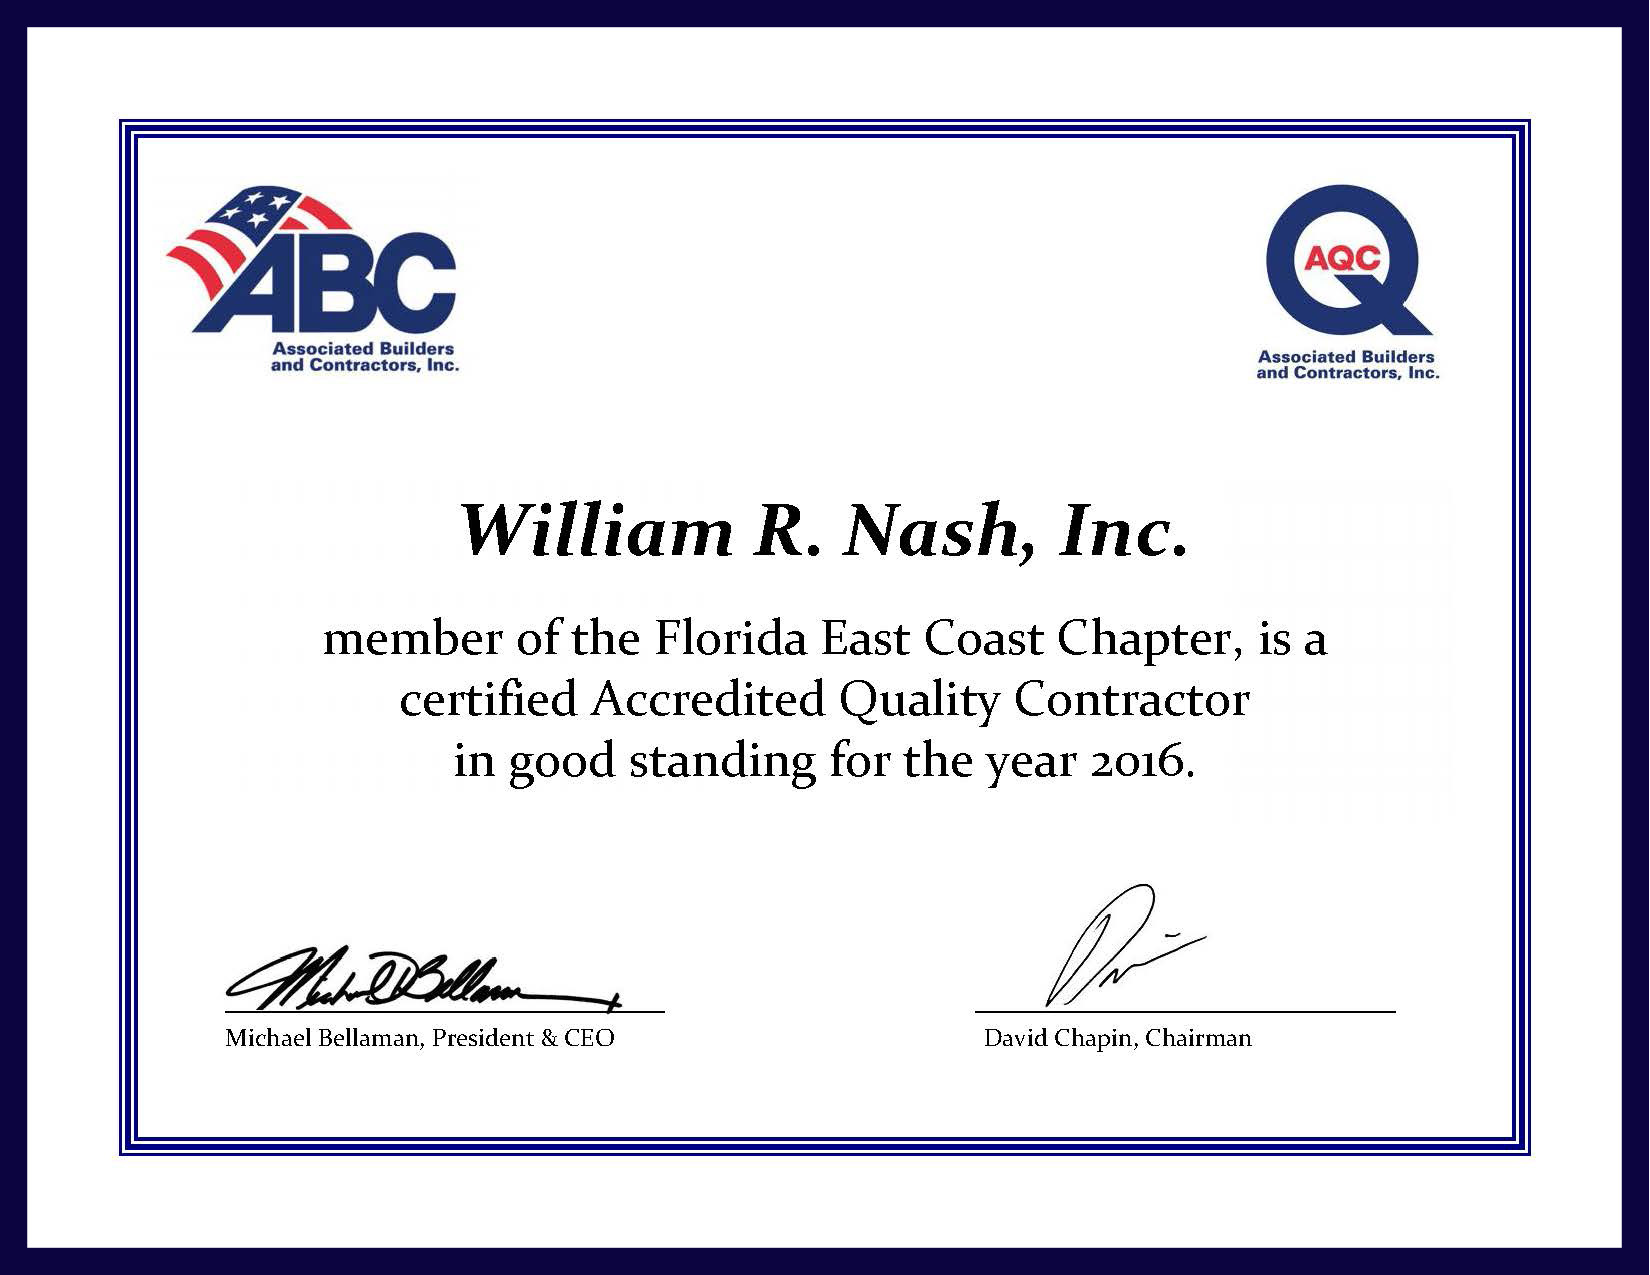 William R. Nash - Florida East Coast Chapter[1] copy